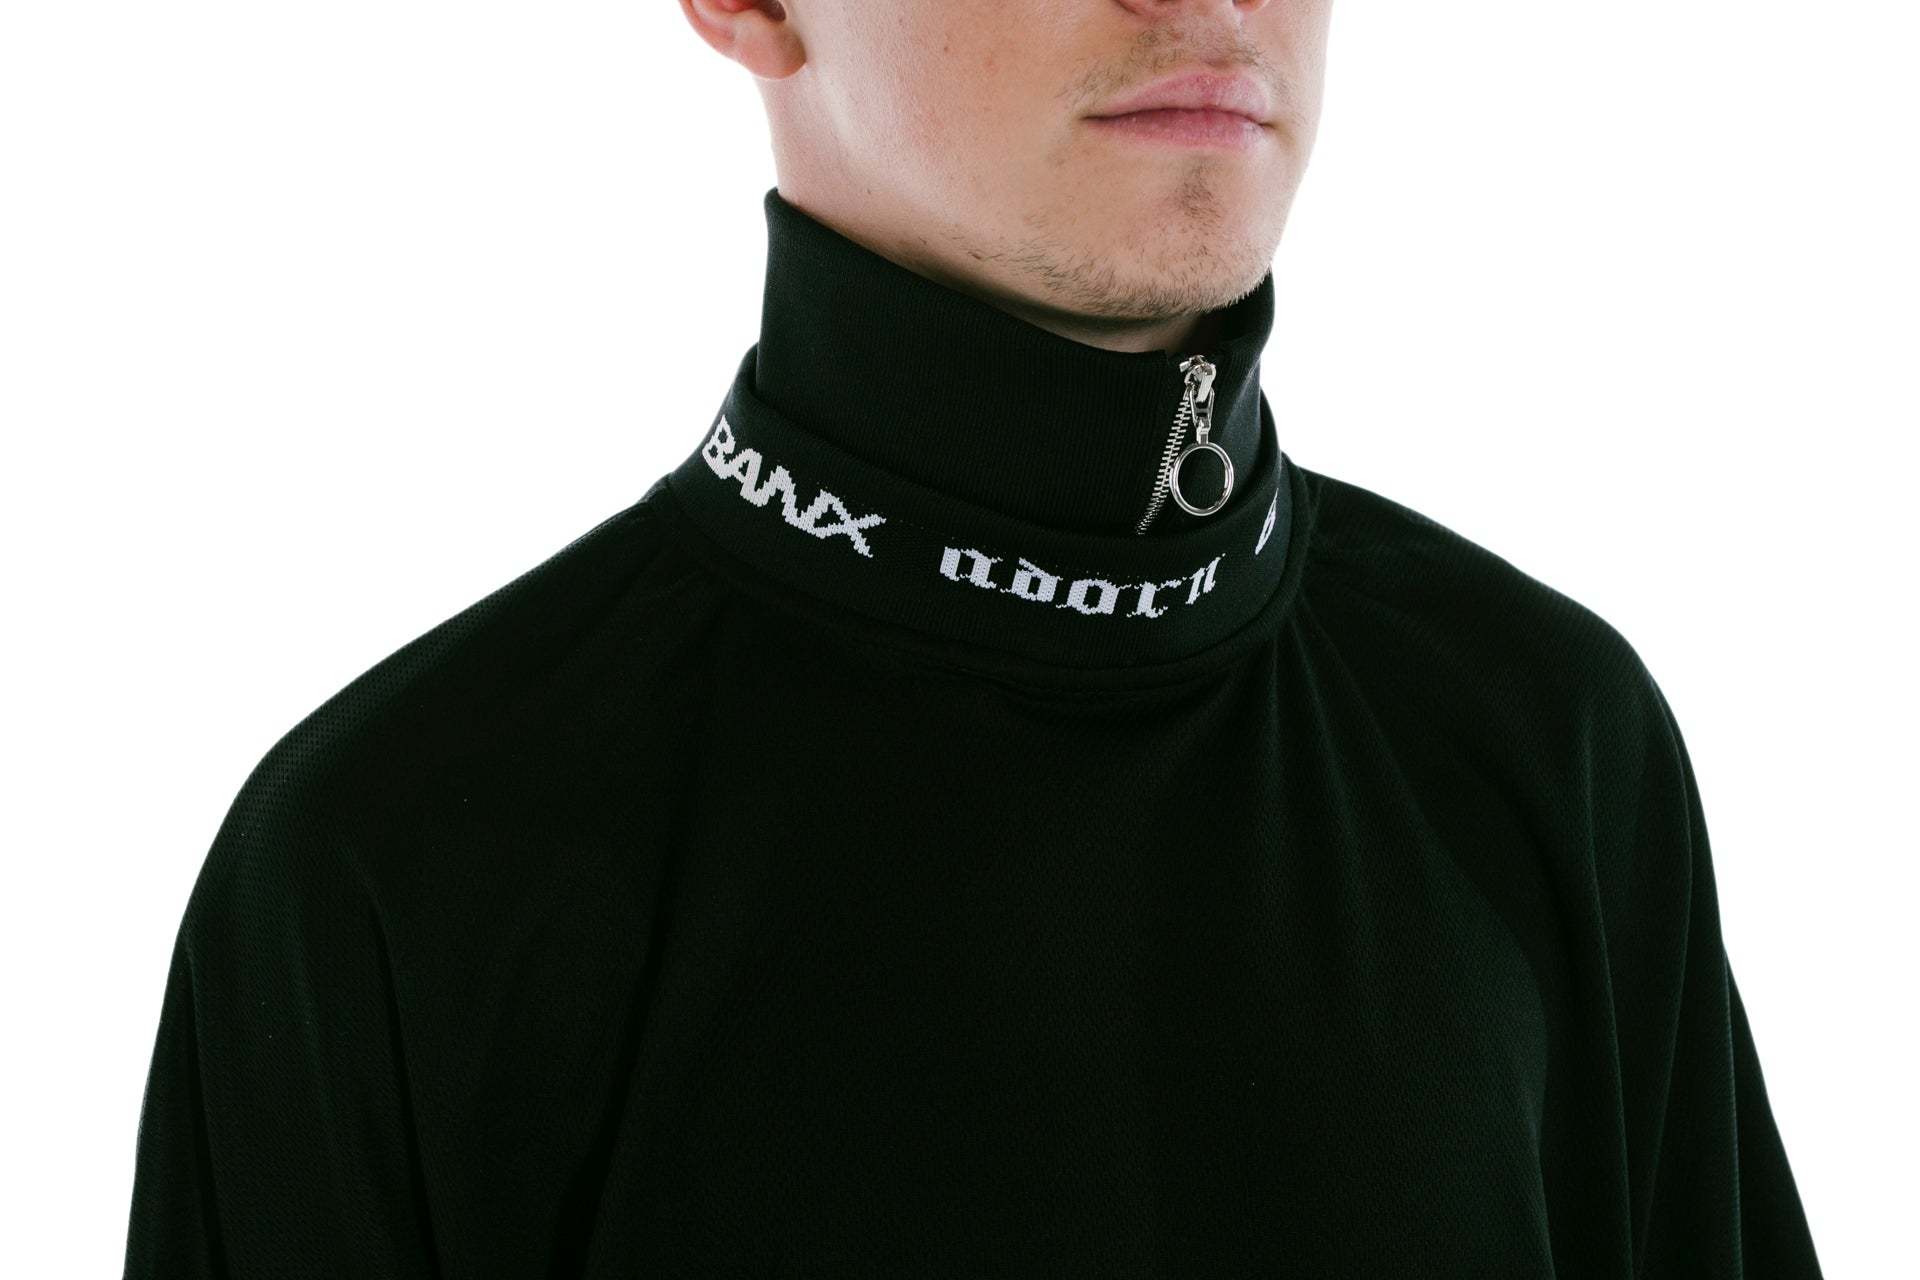 ADORN X BANX SHIRT BLACK - WITH COLLAR